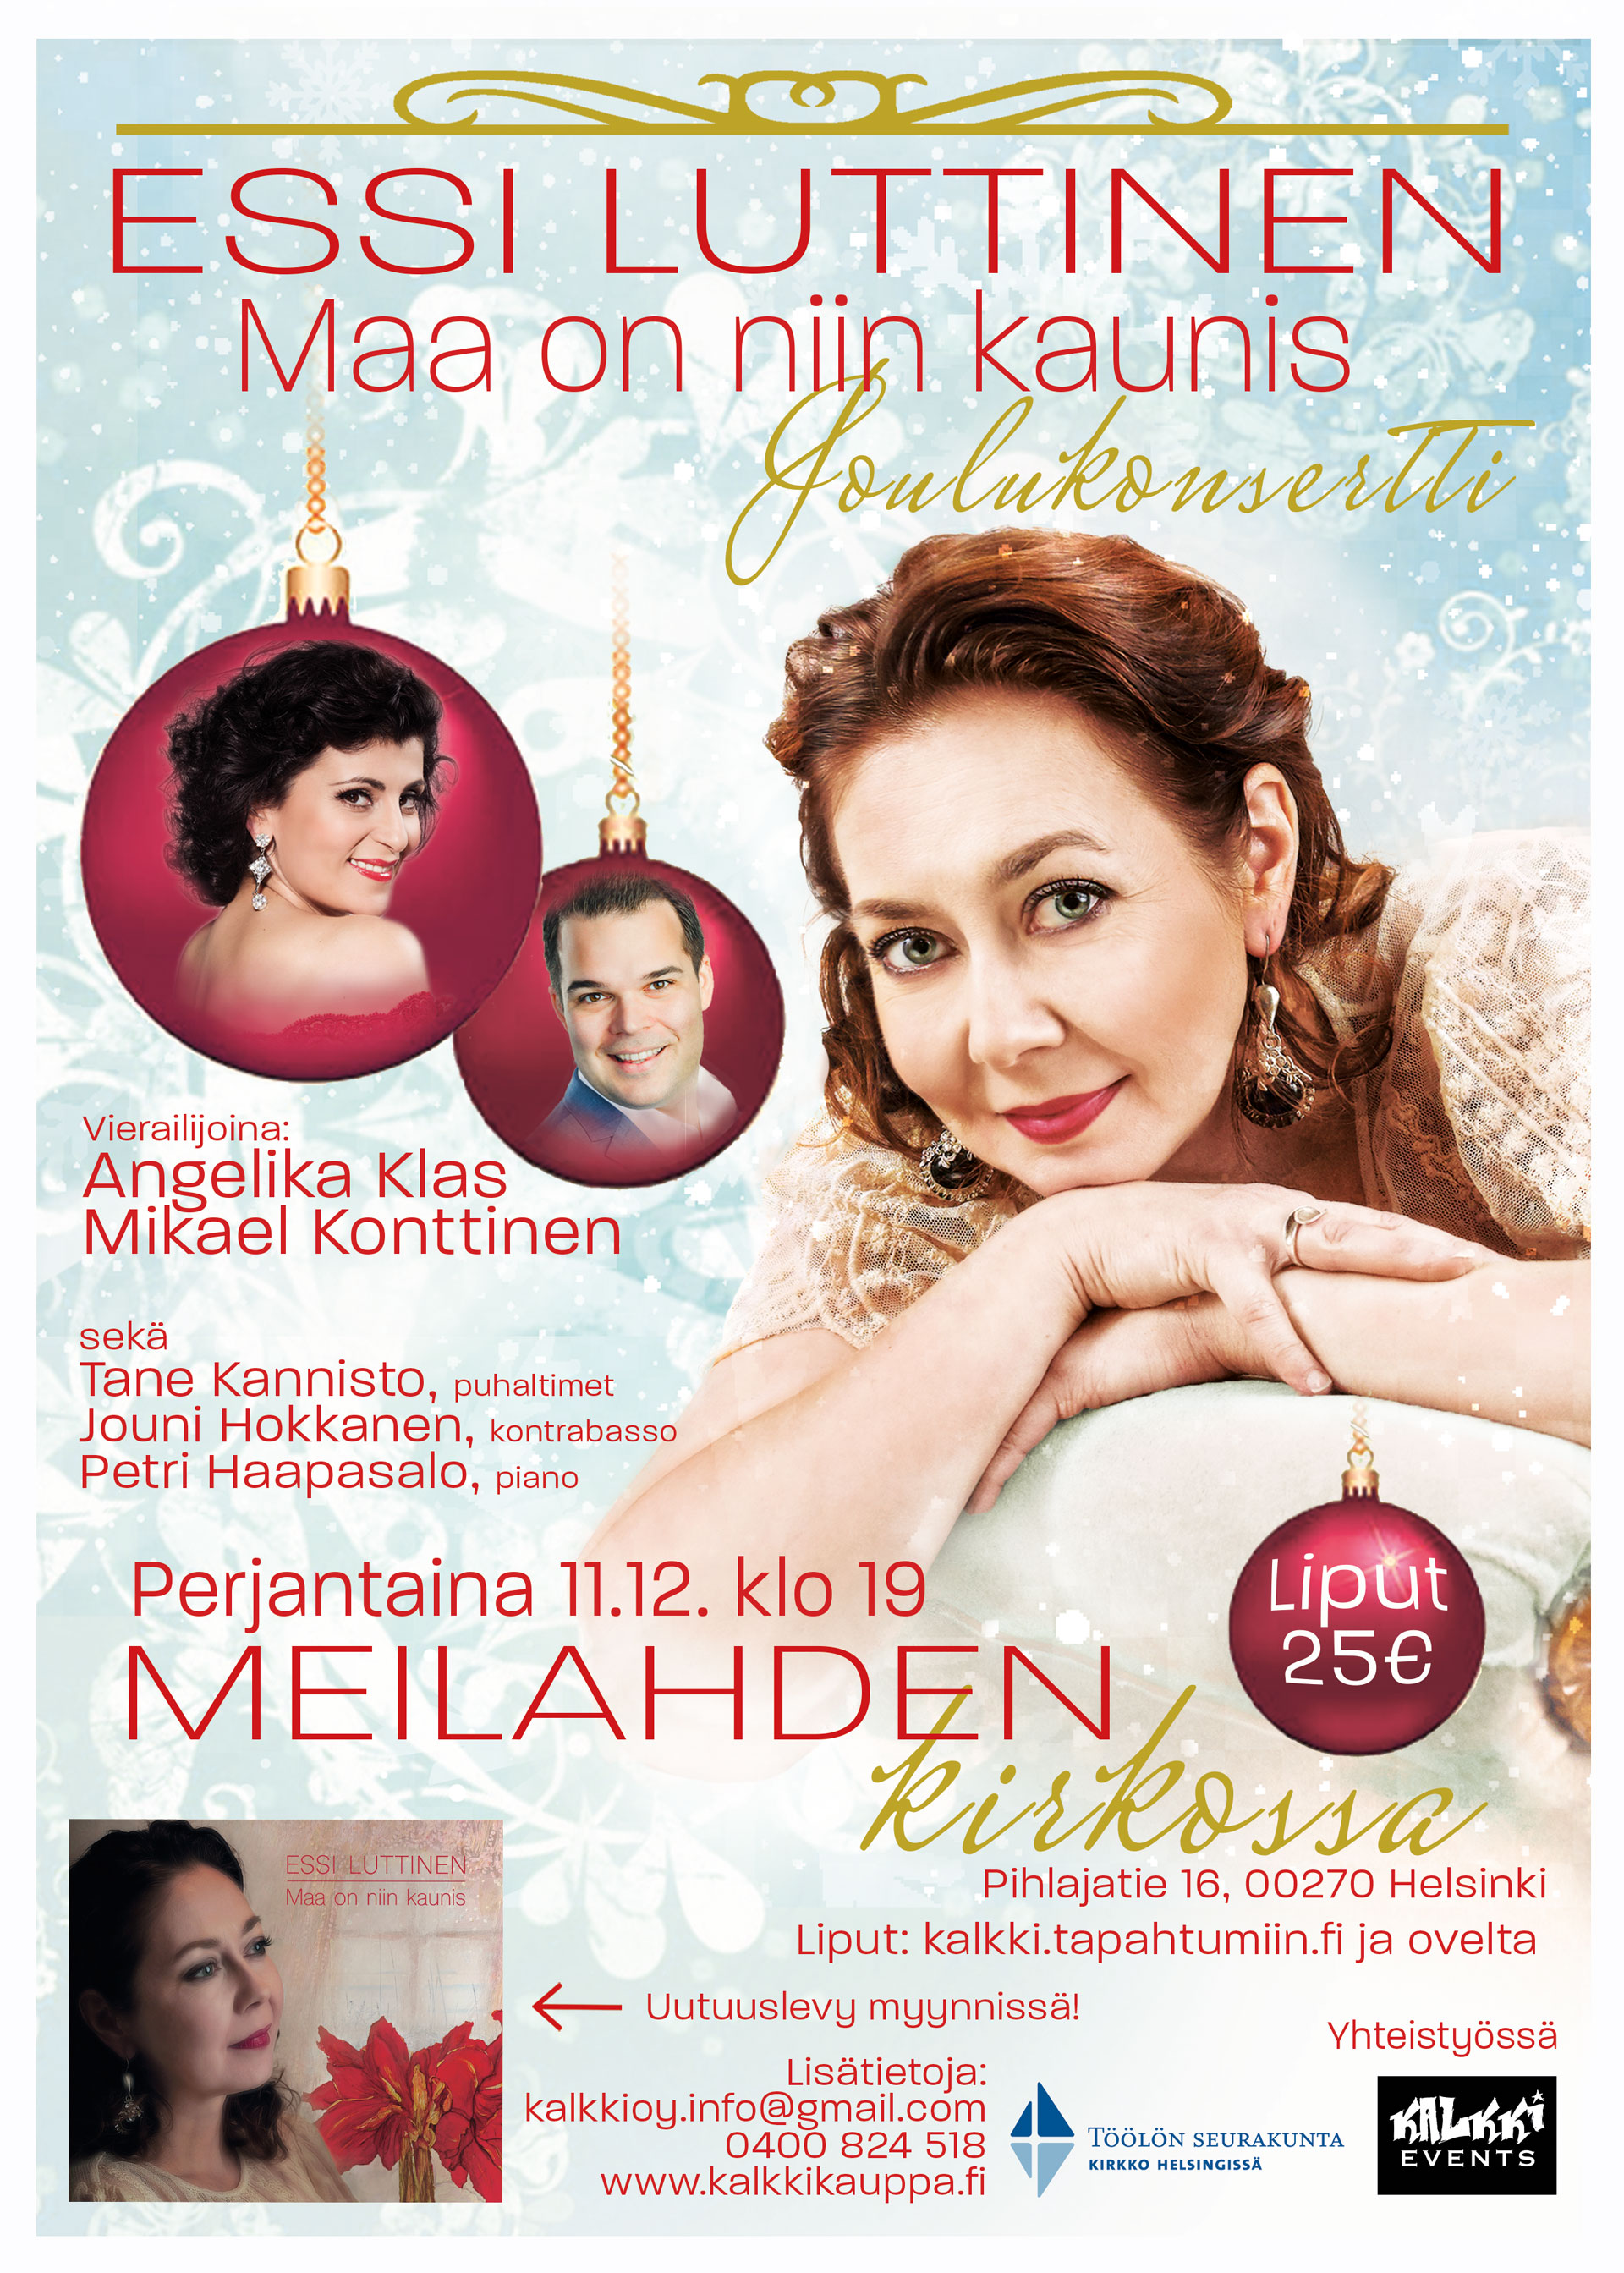 Link to event Essi Luttinen, Christmas Concert